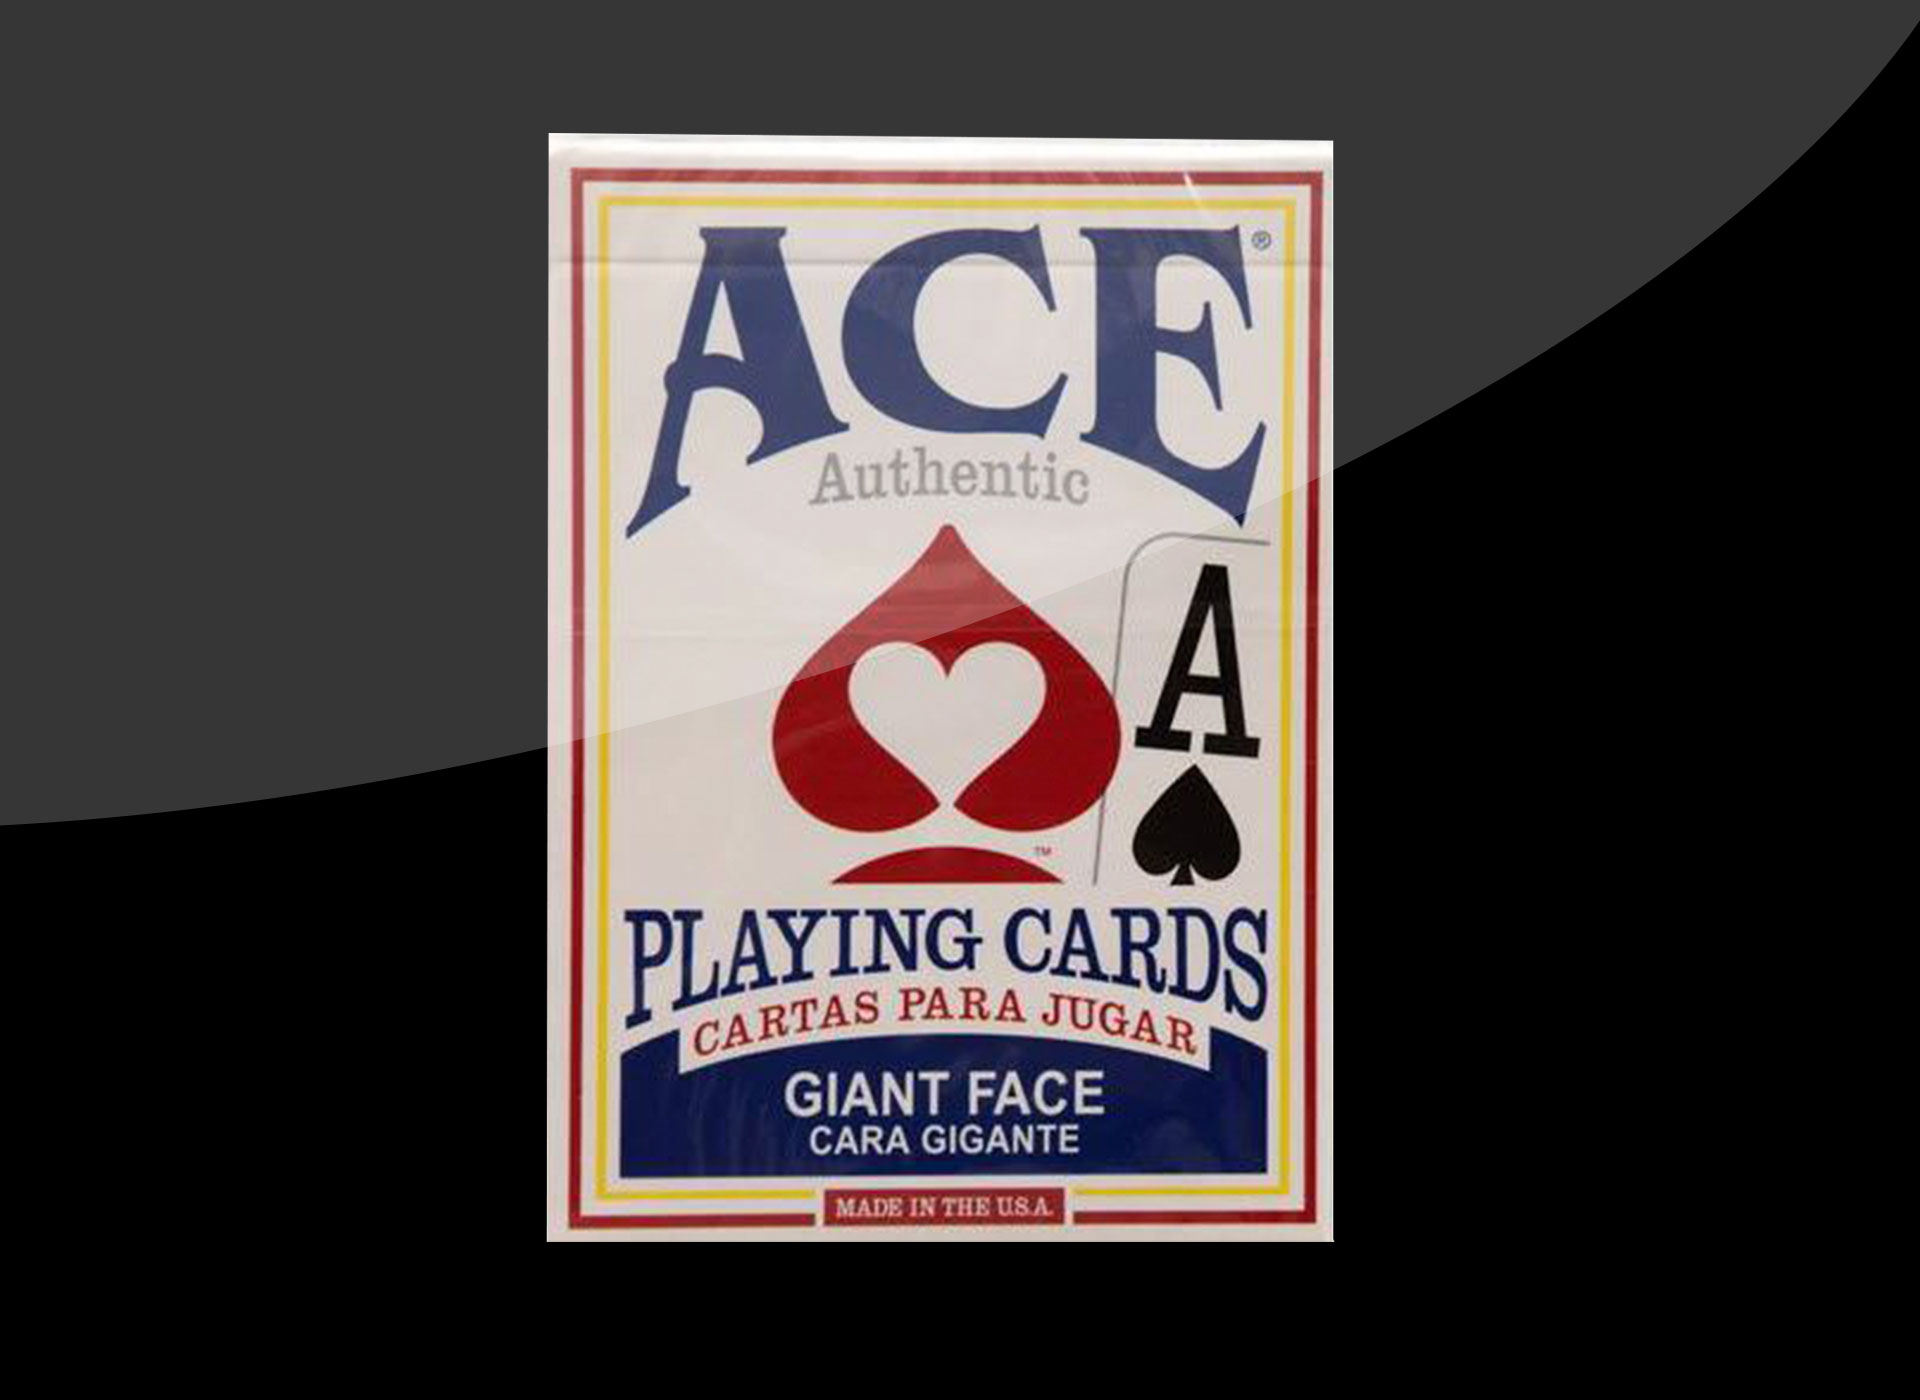 Giant playing cards